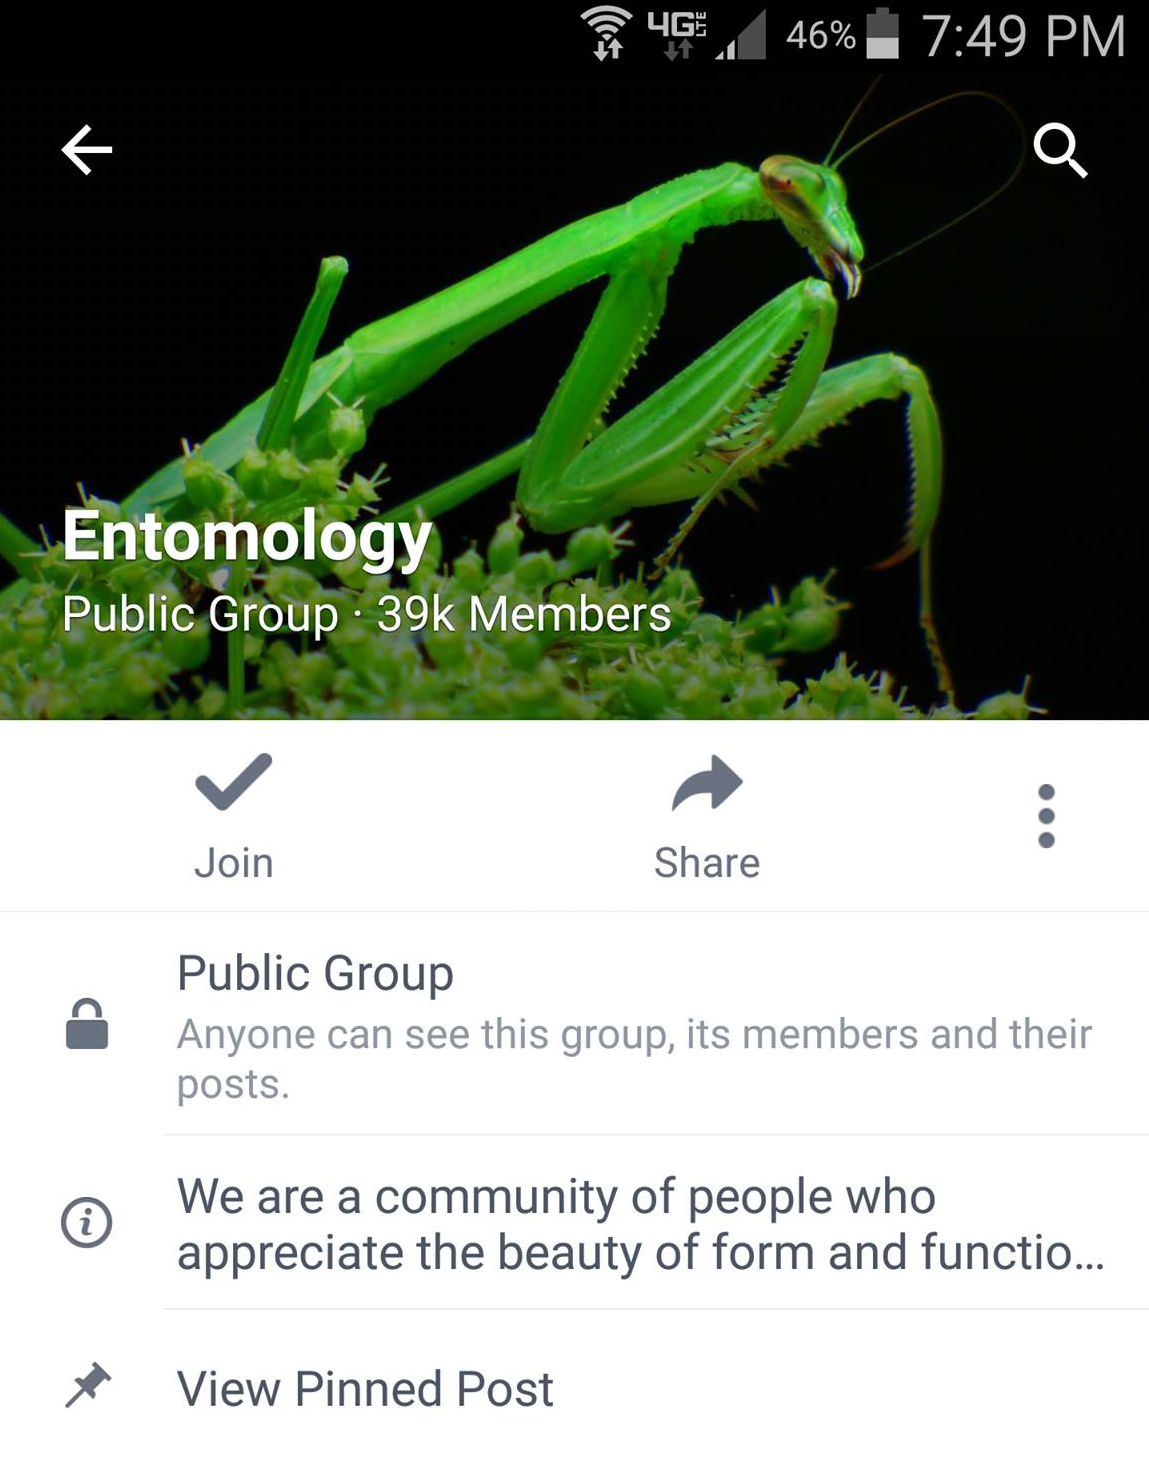 What does the entomologist do